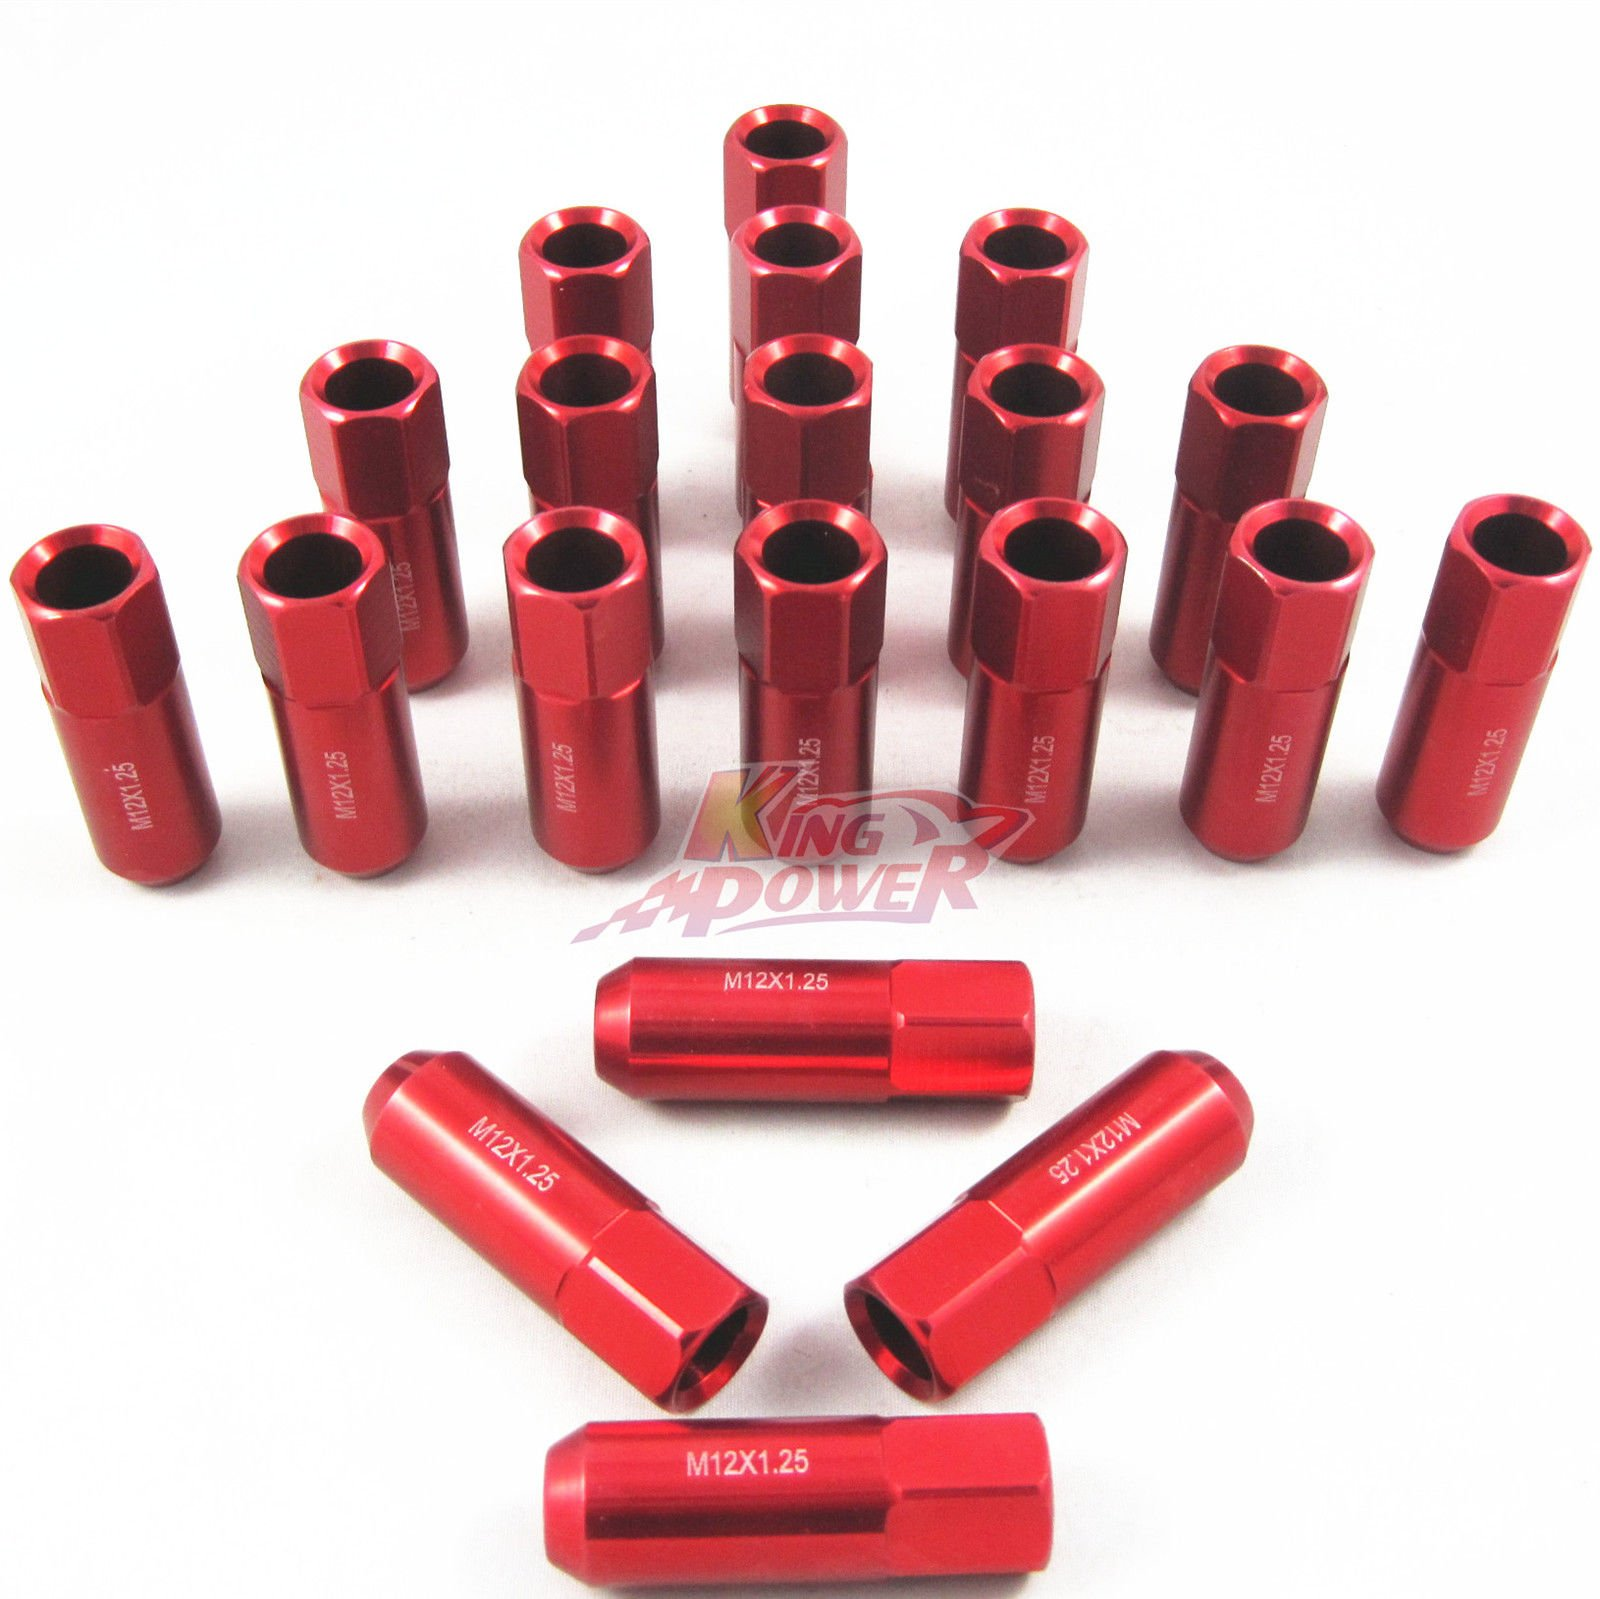 NEW Model 2017 20 RED 60MM ALUMINUM EXTENDED TUNER LUG NUTS LUGS FOR WHEELS/RIMS M12X1.25 RD by ANLO Trading